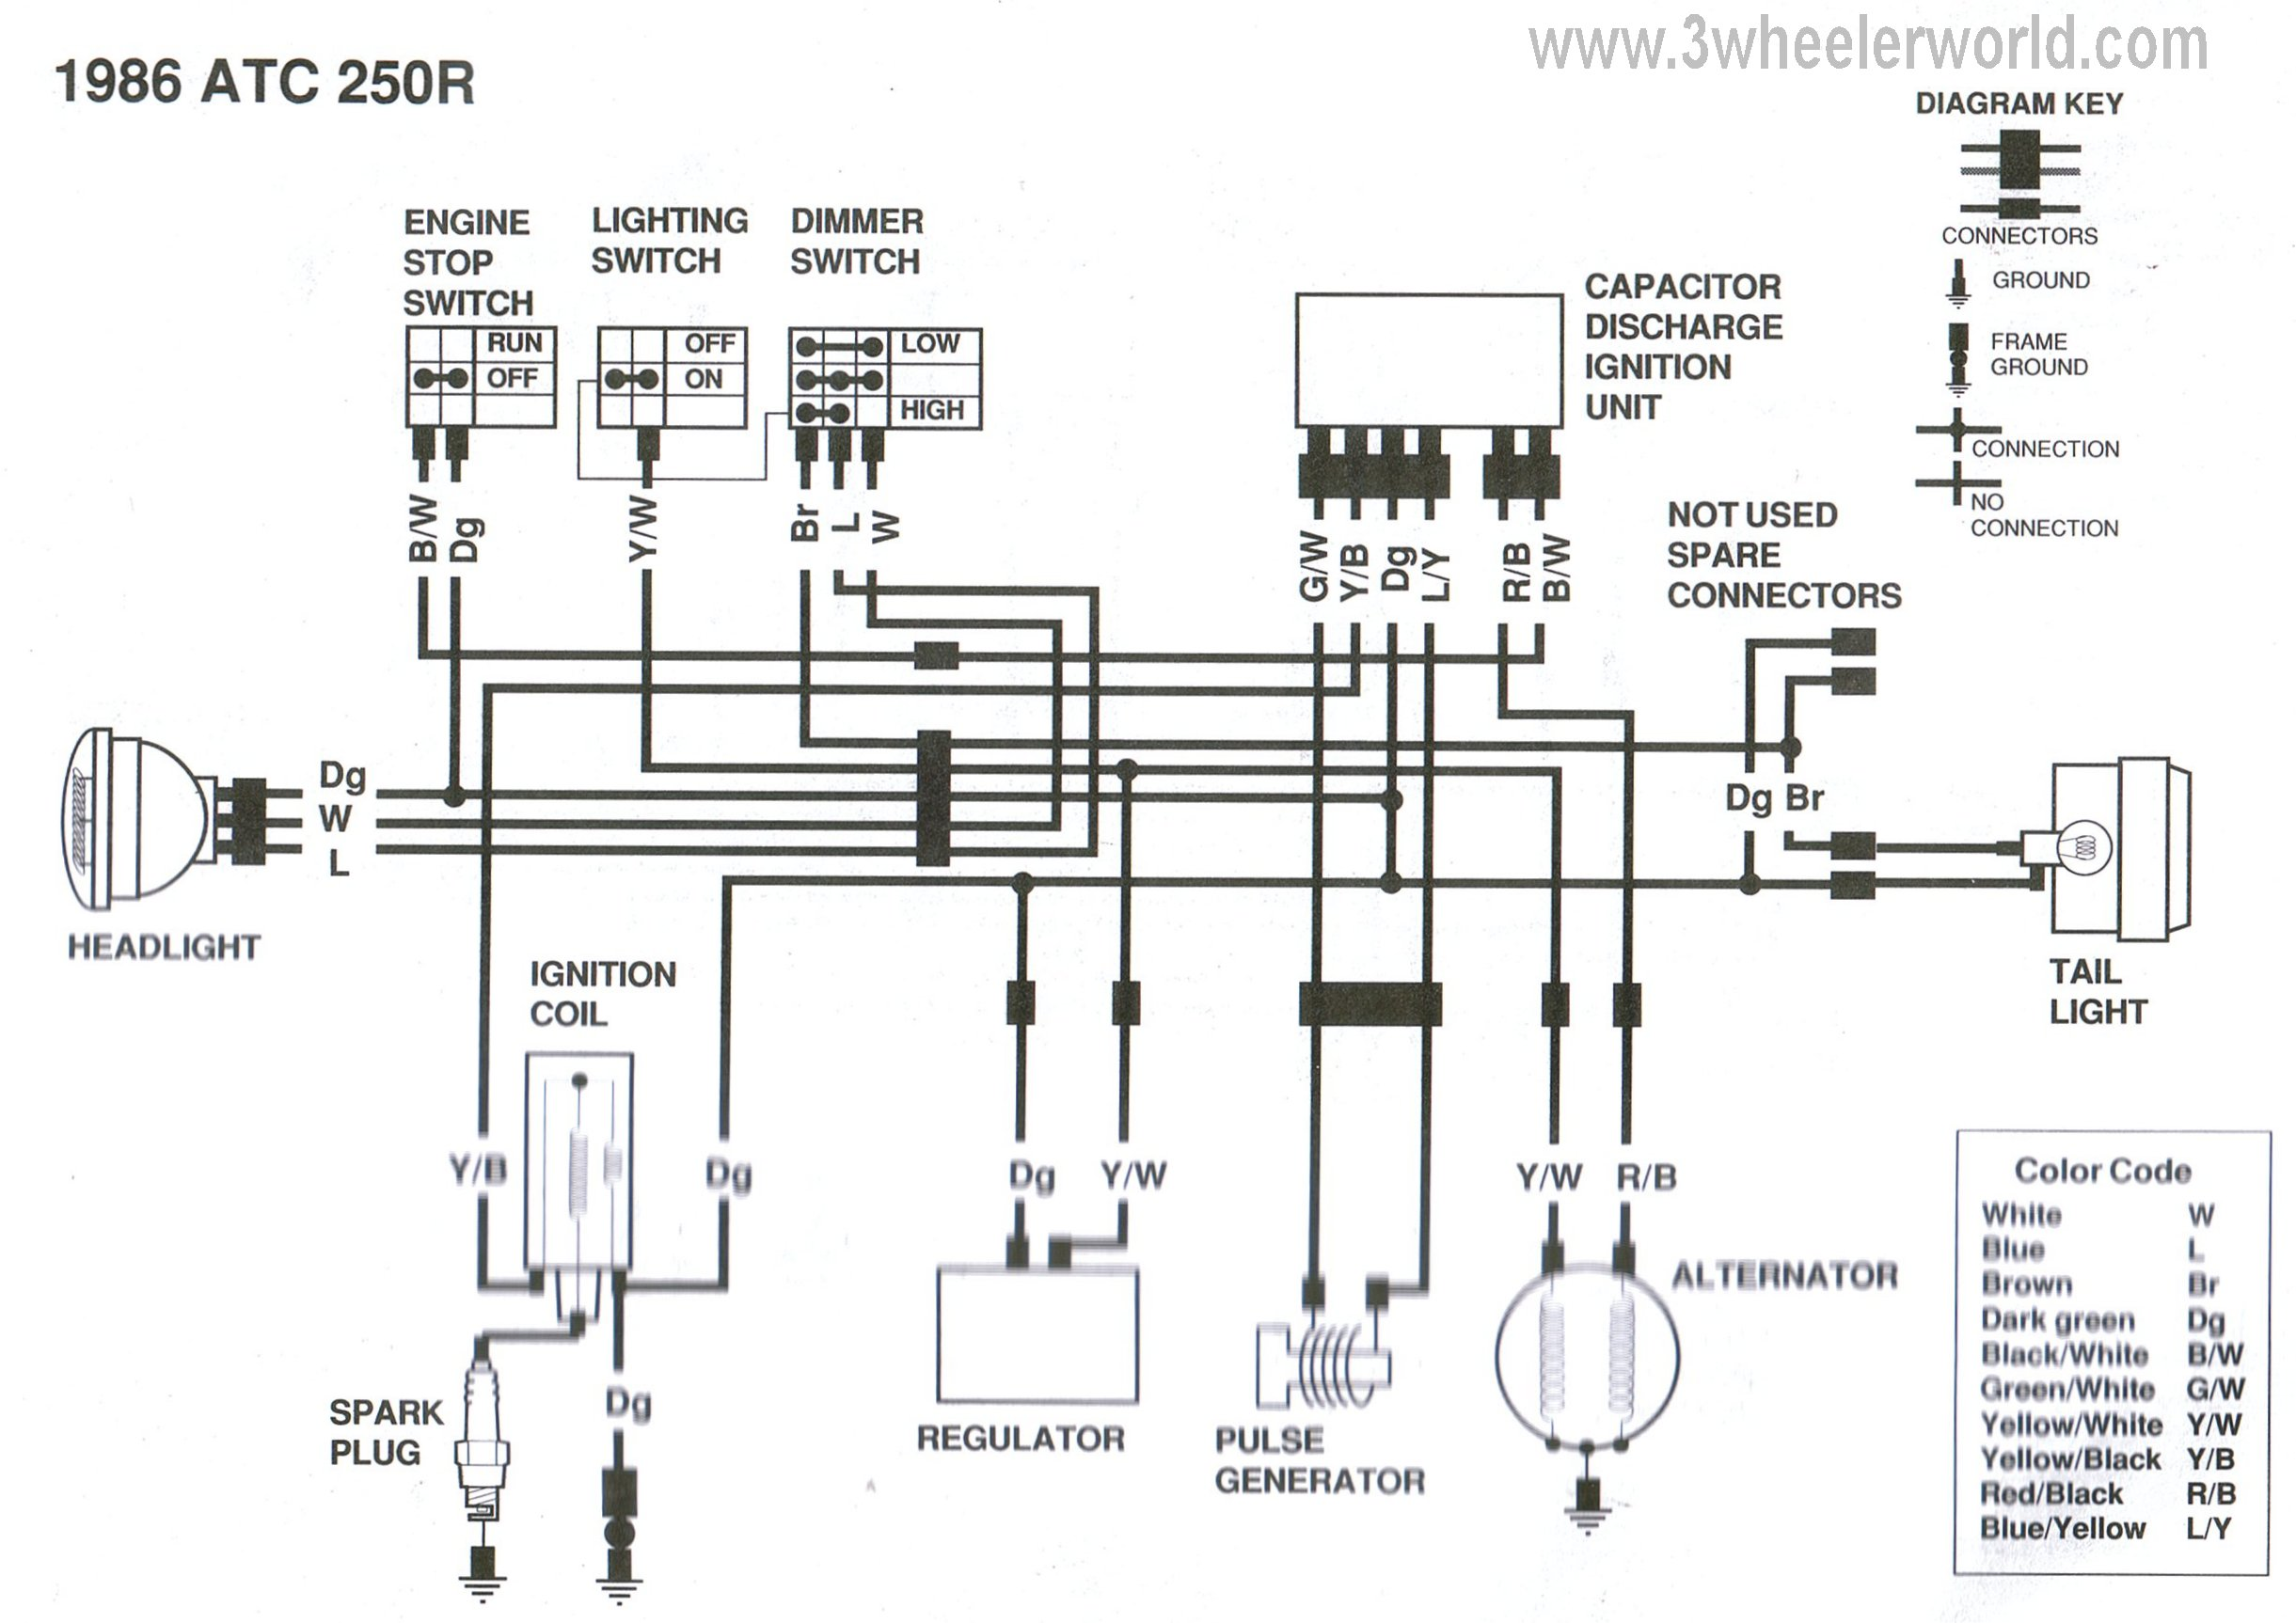 hight resolution of headlight wiring diagram atc70 30 wiring diagram images wiring headlight wiring upgrade diagram headlight wiring diagram